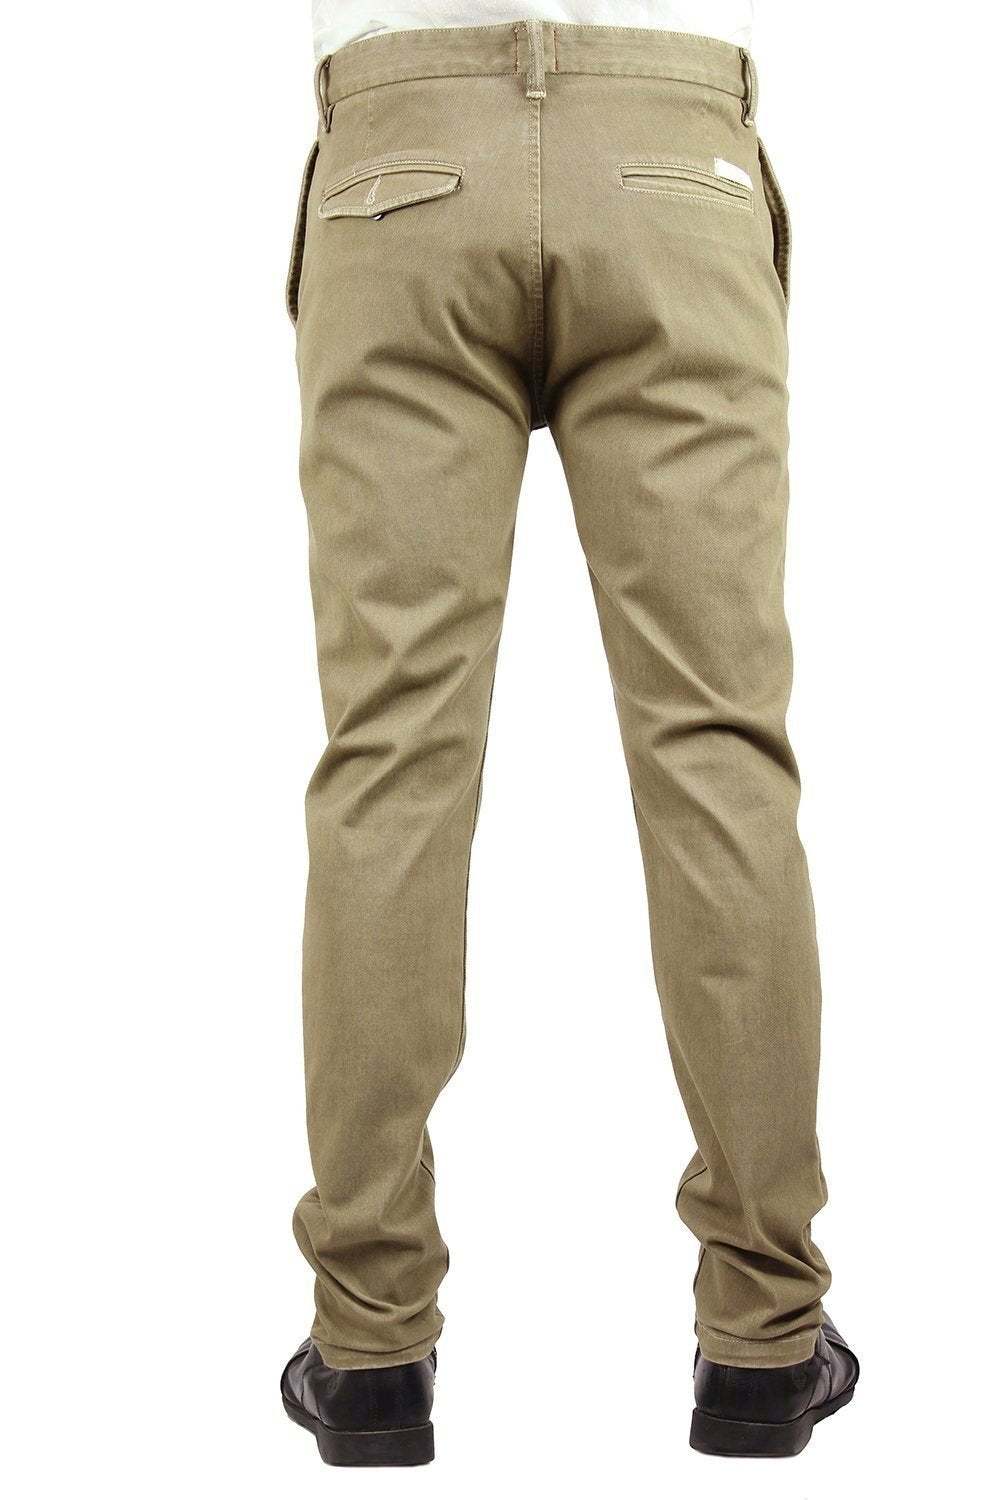 """The Axe"" - Old Khaki Slim Chino 12oz 4Way Stretch French Terry"